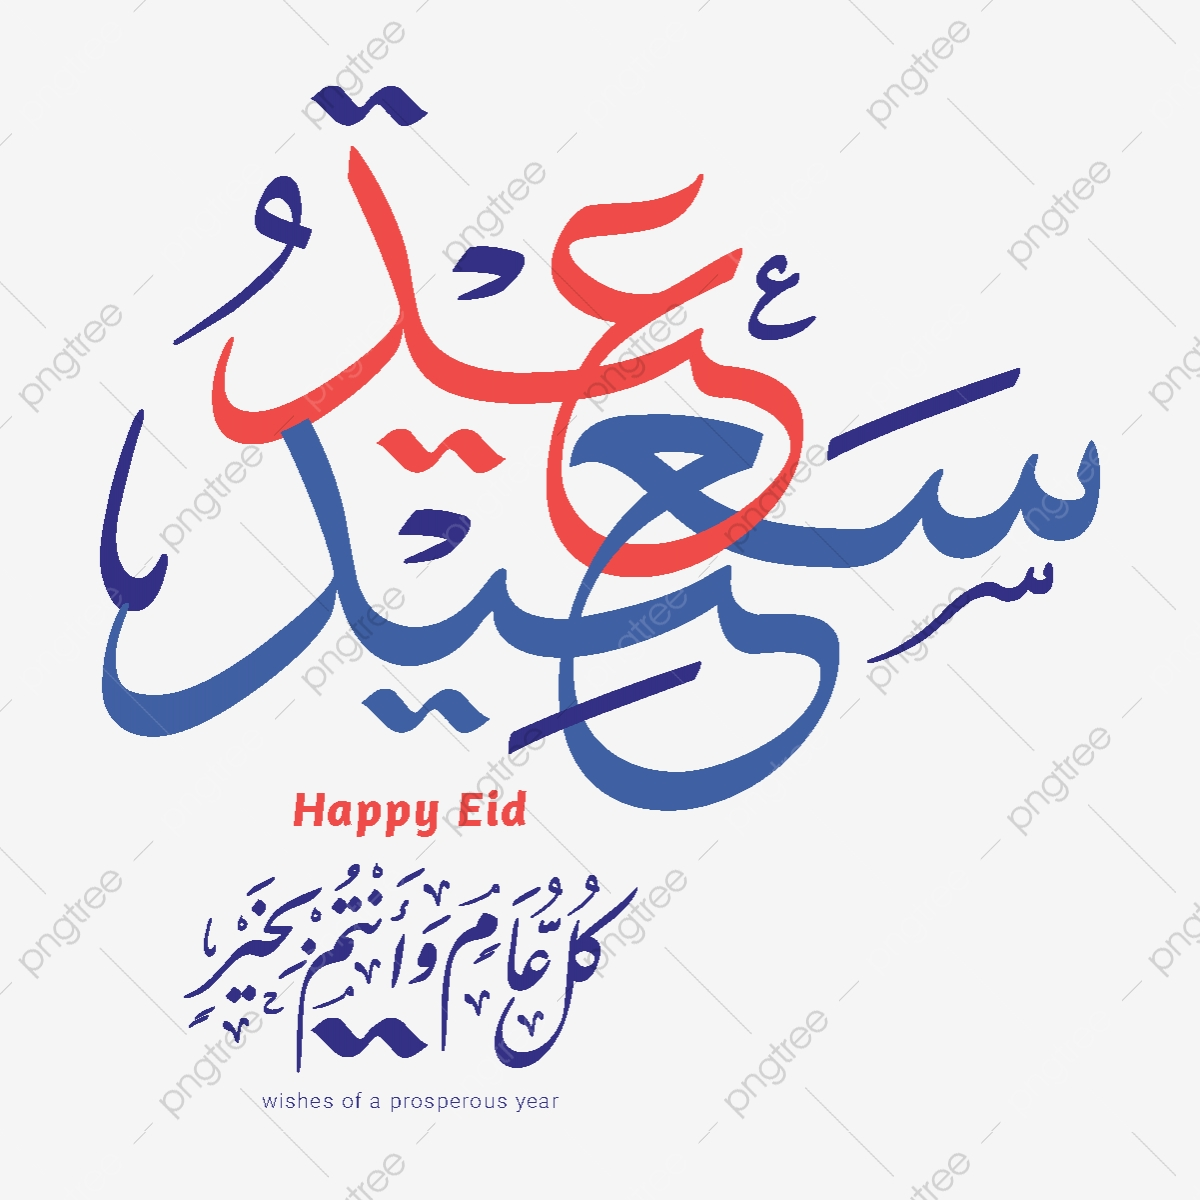 Happy Eid Mubarak Arabic Calligraphy, Arabic Calligraphy, Calligraphic Design Elements, Calligraphy Alphabet PNG and Vector with Transparent Background for Free Download